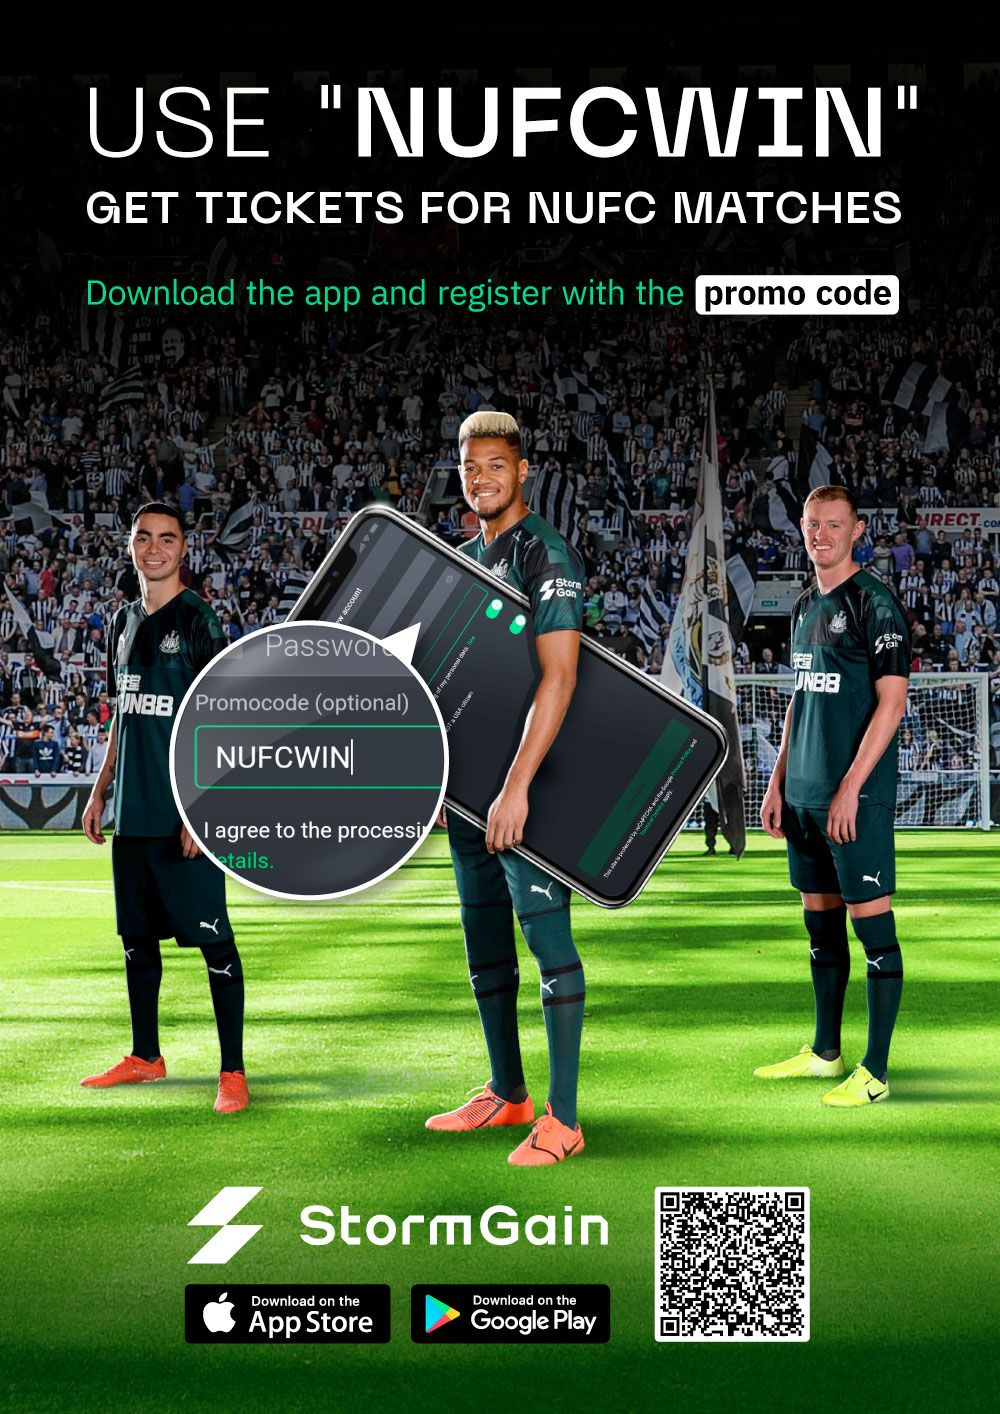 Enter promo code NUFCWIN when registering for your StormGain account